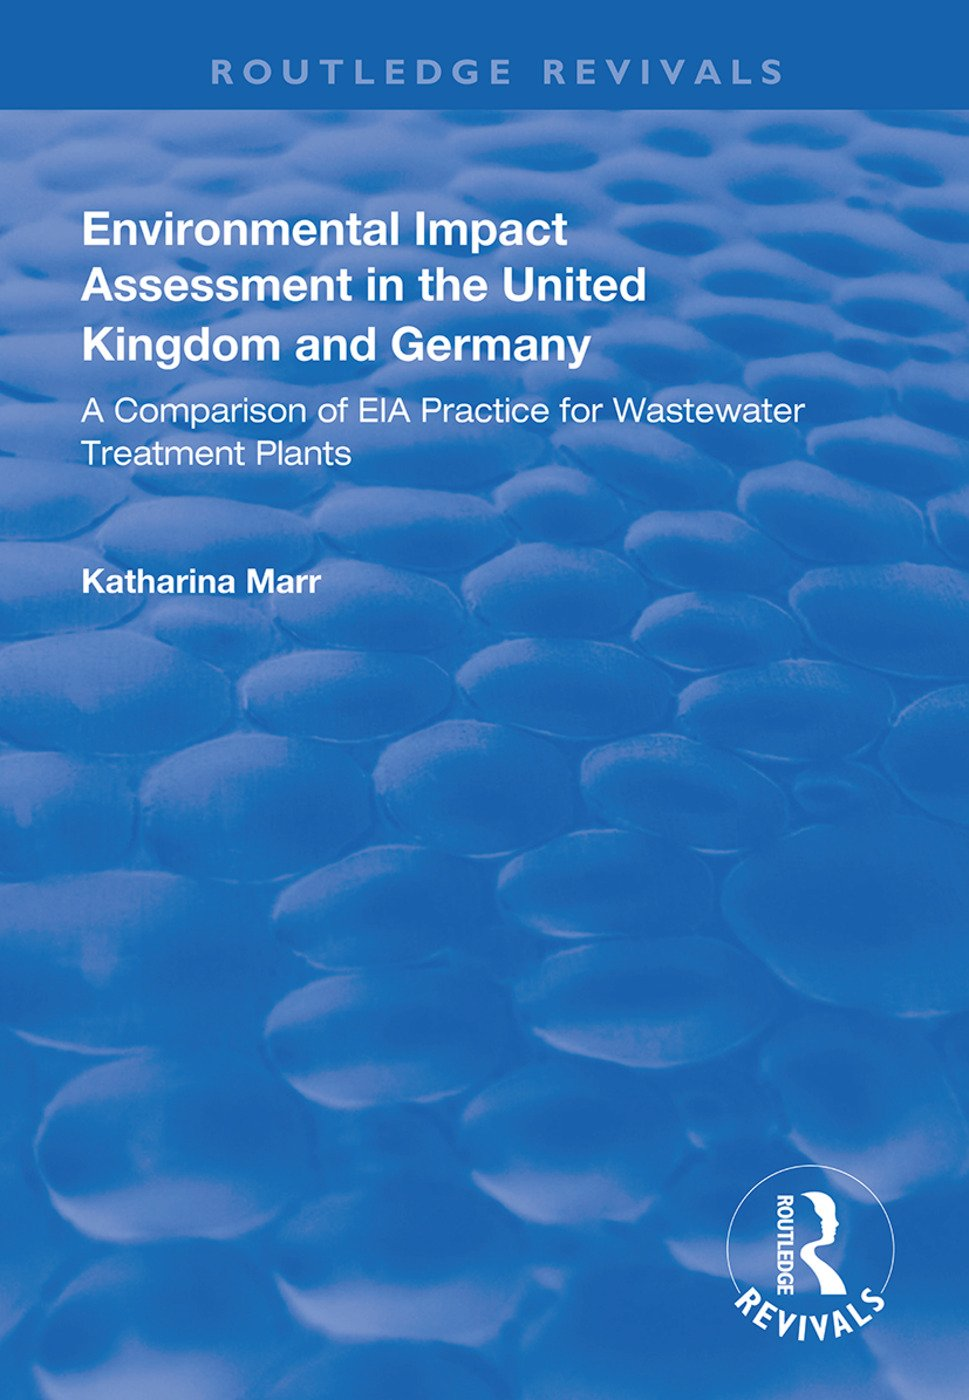 Environmental Impact Assessment in the United Kingdom and Germany: Comparision of EIA Practice for Wastewater Treatment Plants book cover